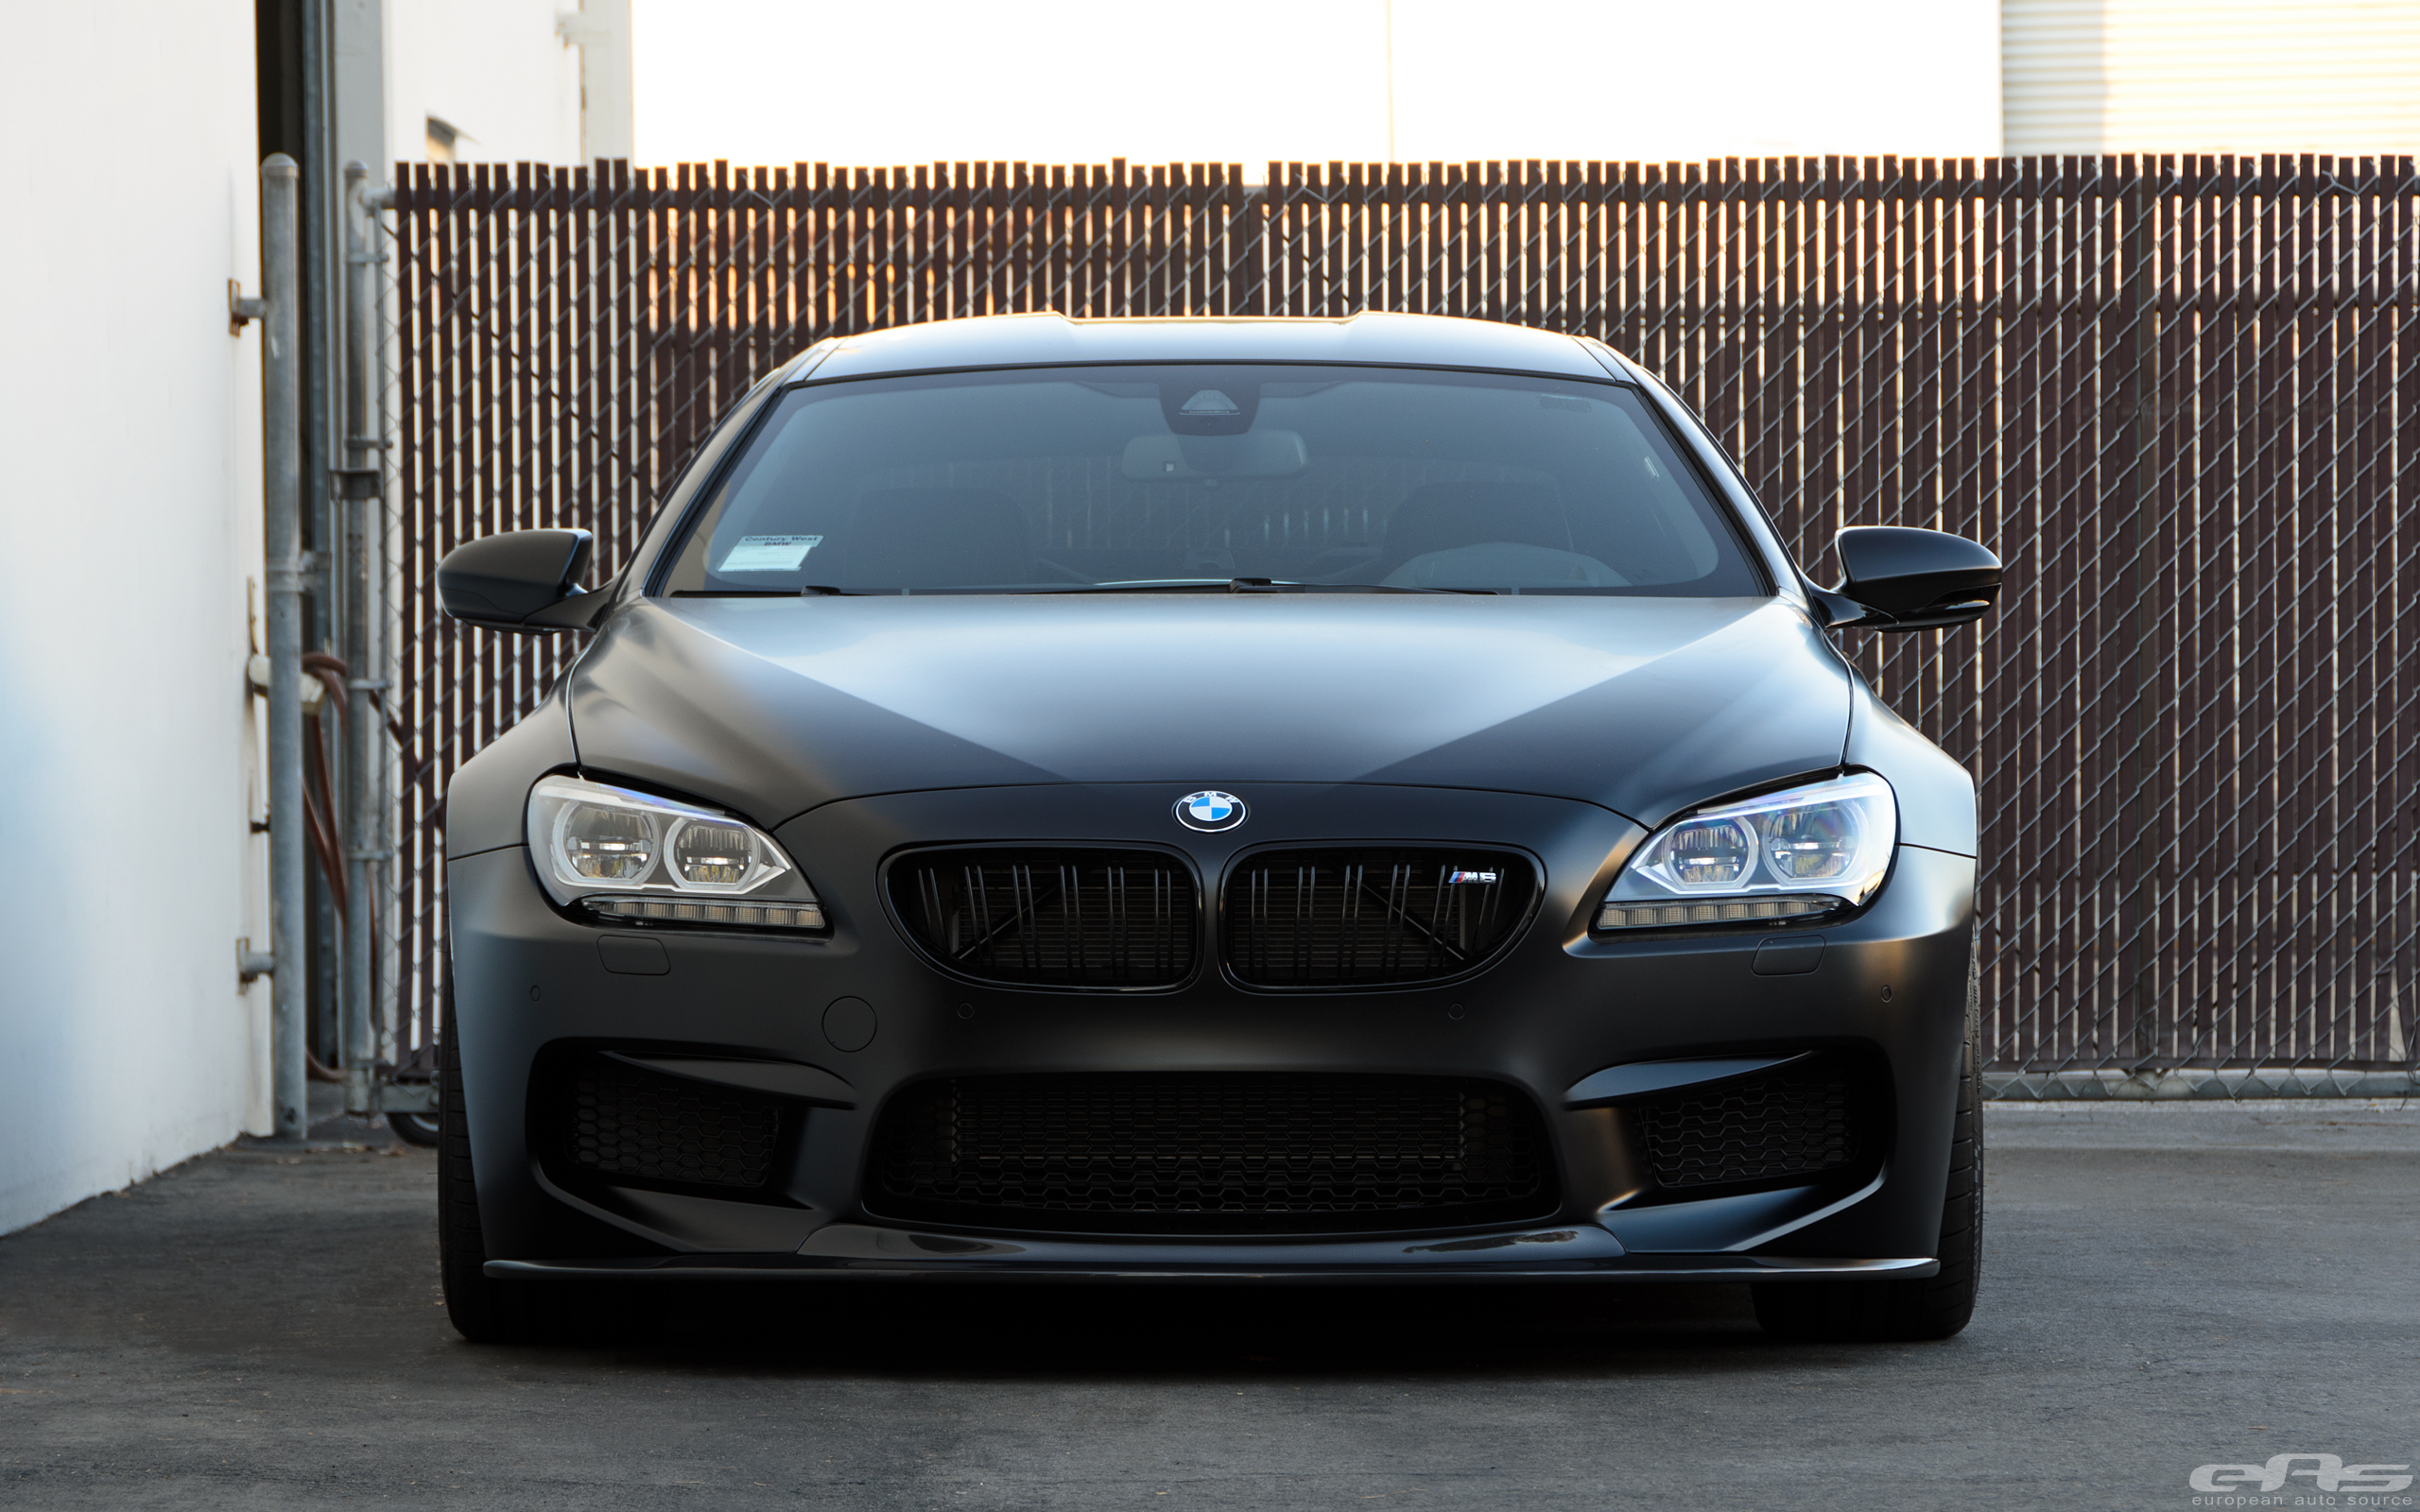 Frozen Black Bmw M6 Gets New Wheels